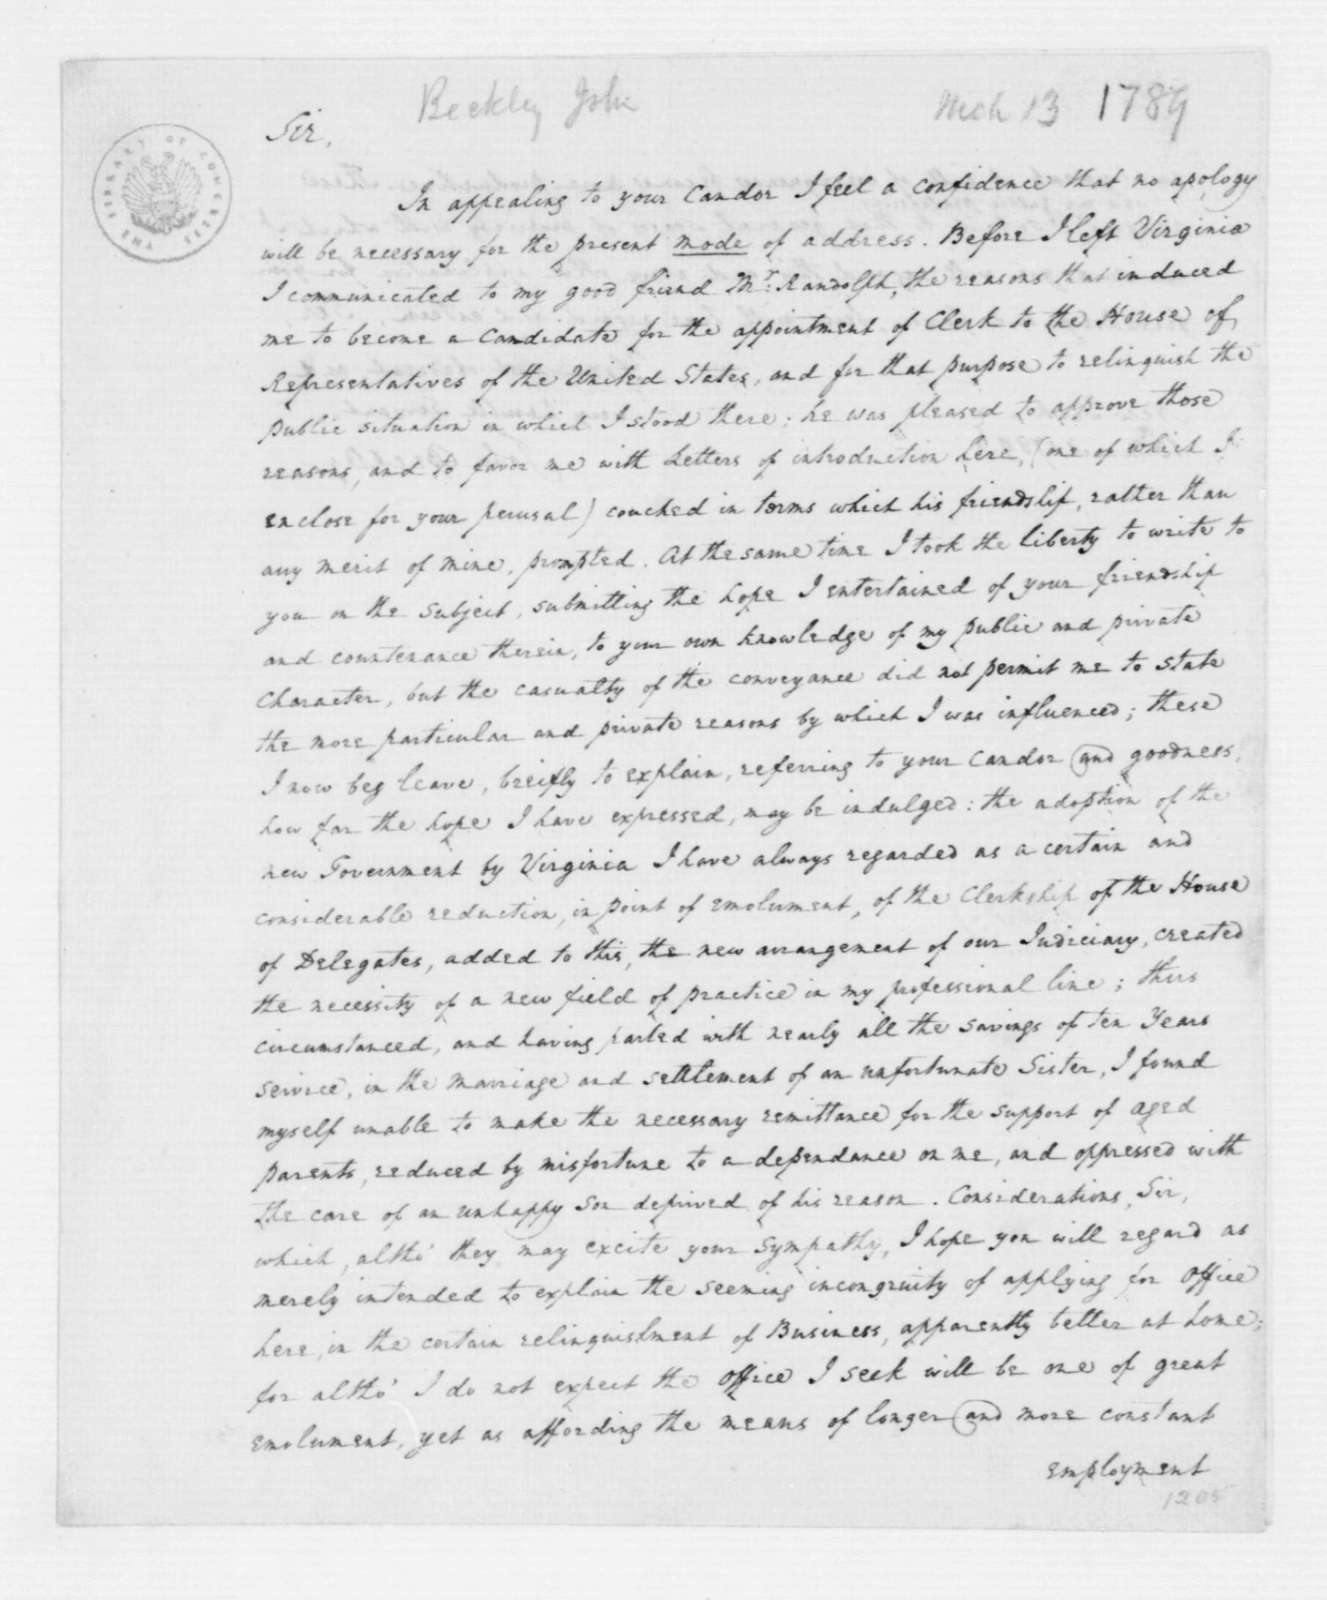 John Beckley to James Madison, March 13, 1789.